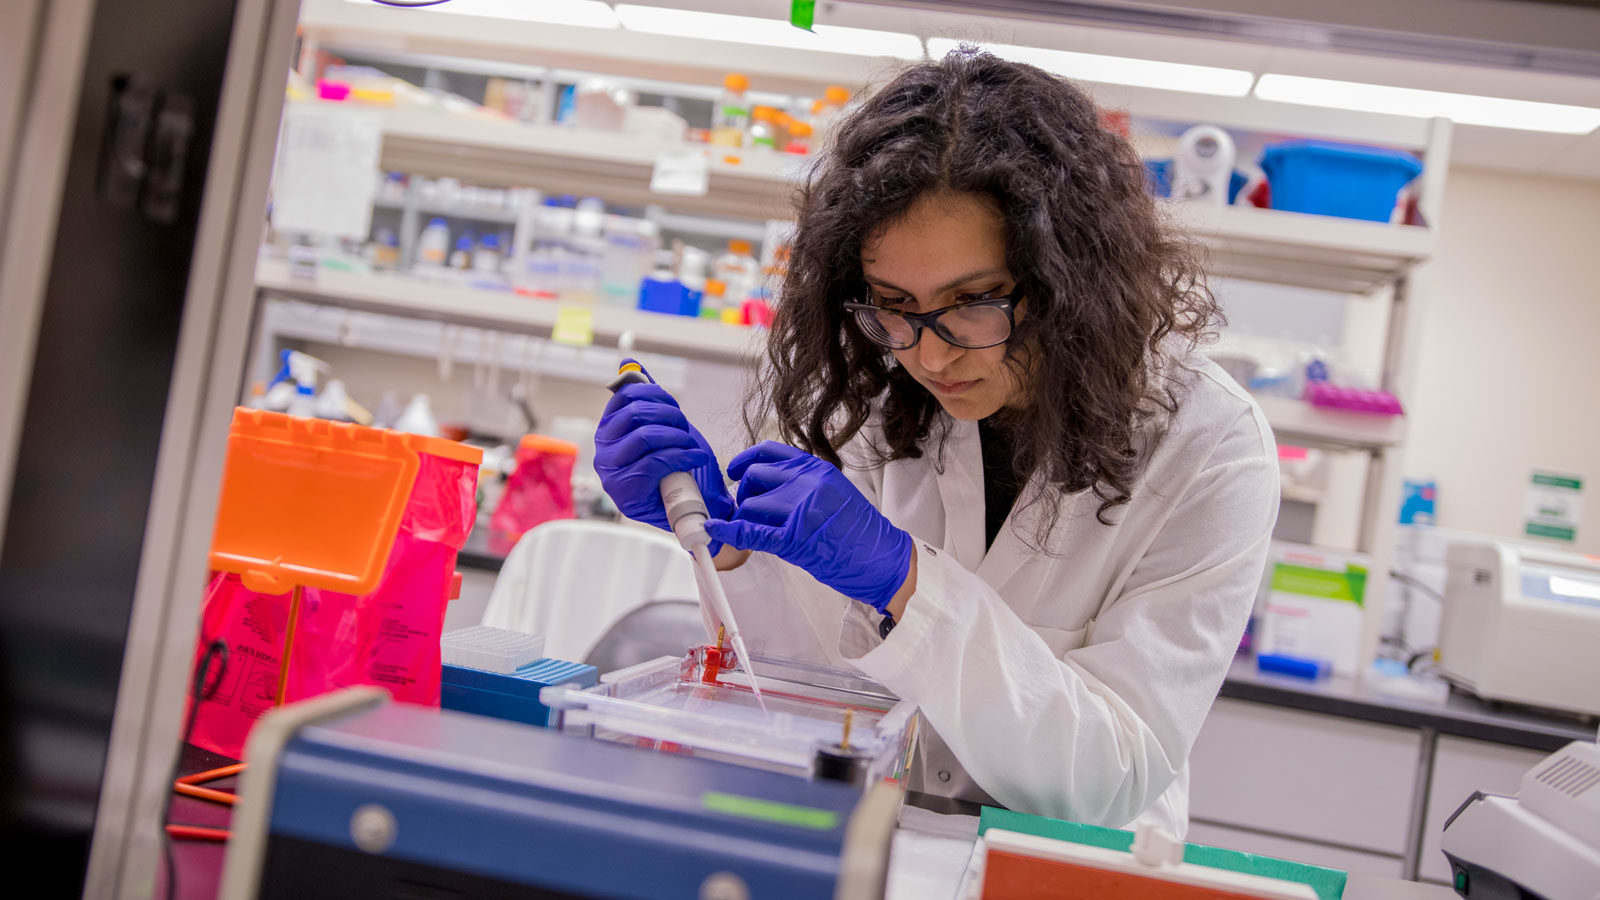 Grand Challenges Scholar Ava Karanjia works on chemical engineering and microbiology research in the lab.